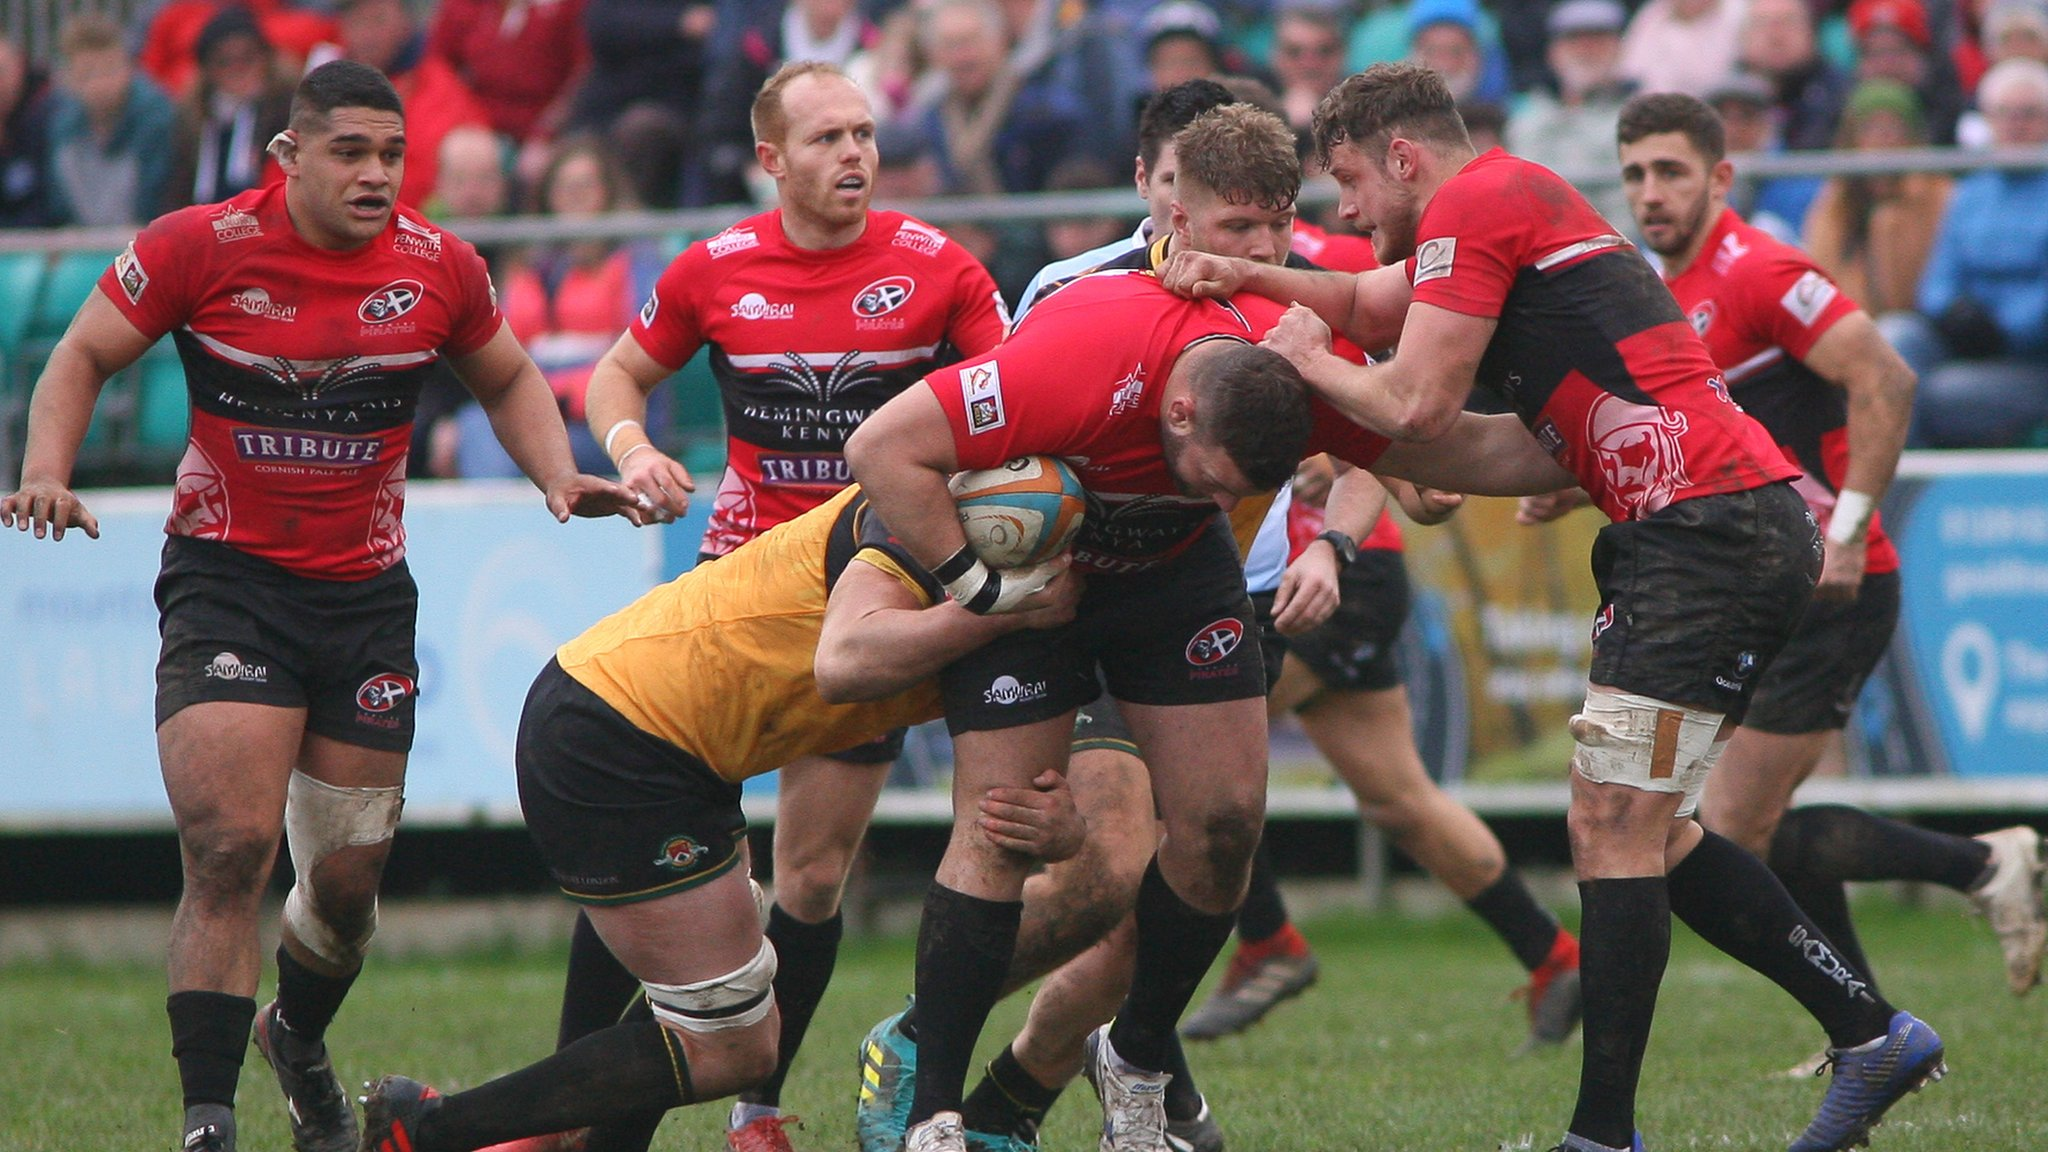 Gavin Cattle: Cornish Pirates will not repeat Ealing performance in cup